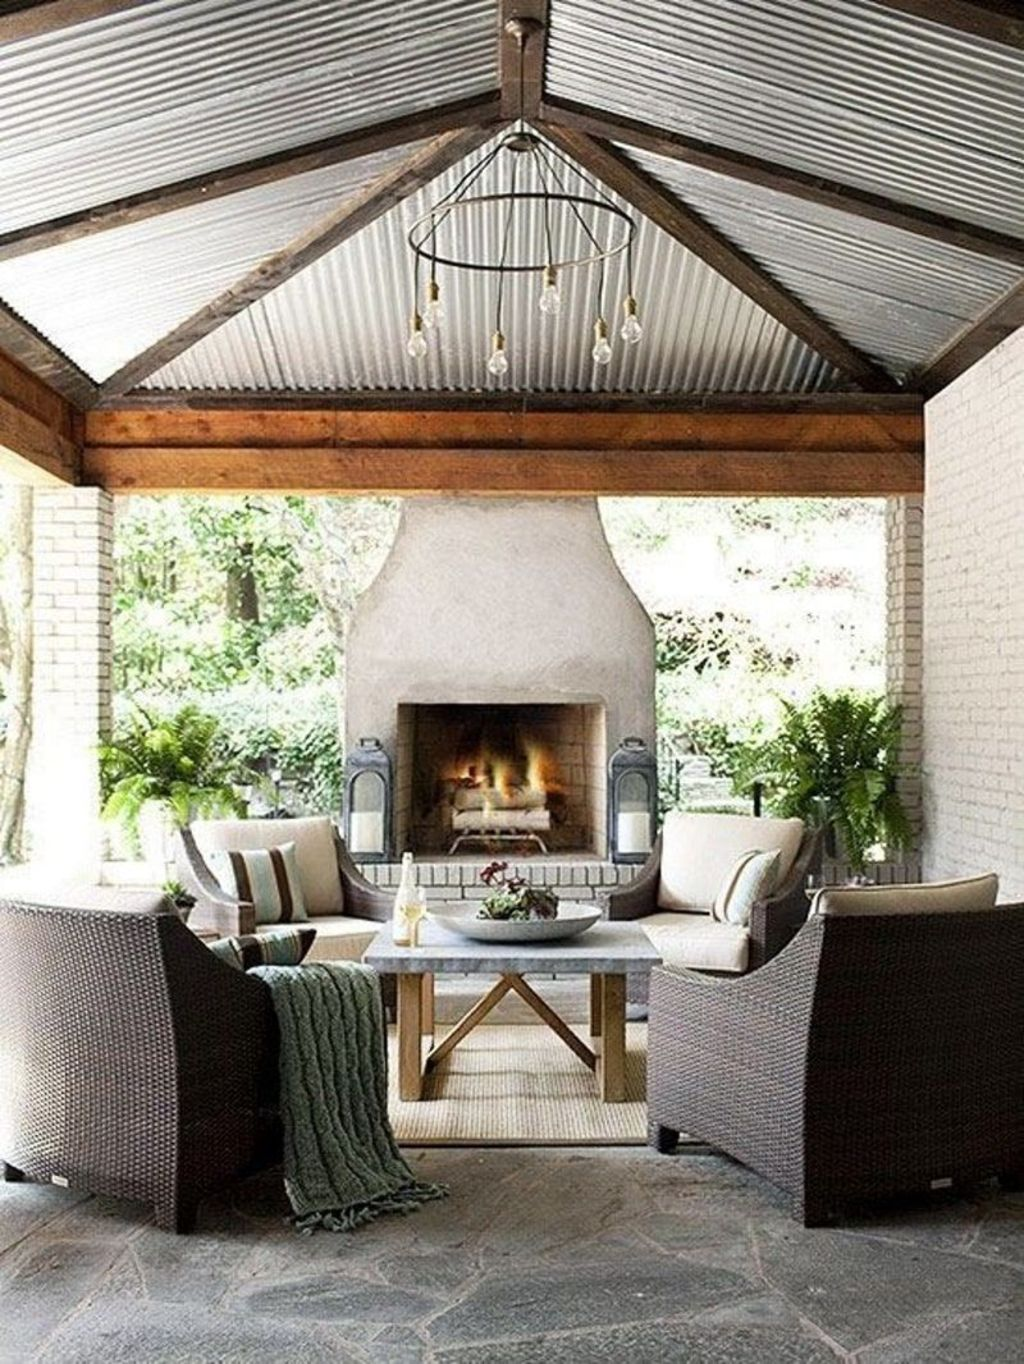 Back porch design ideas that perfect for every home as special space to make it anything you want Part (12)